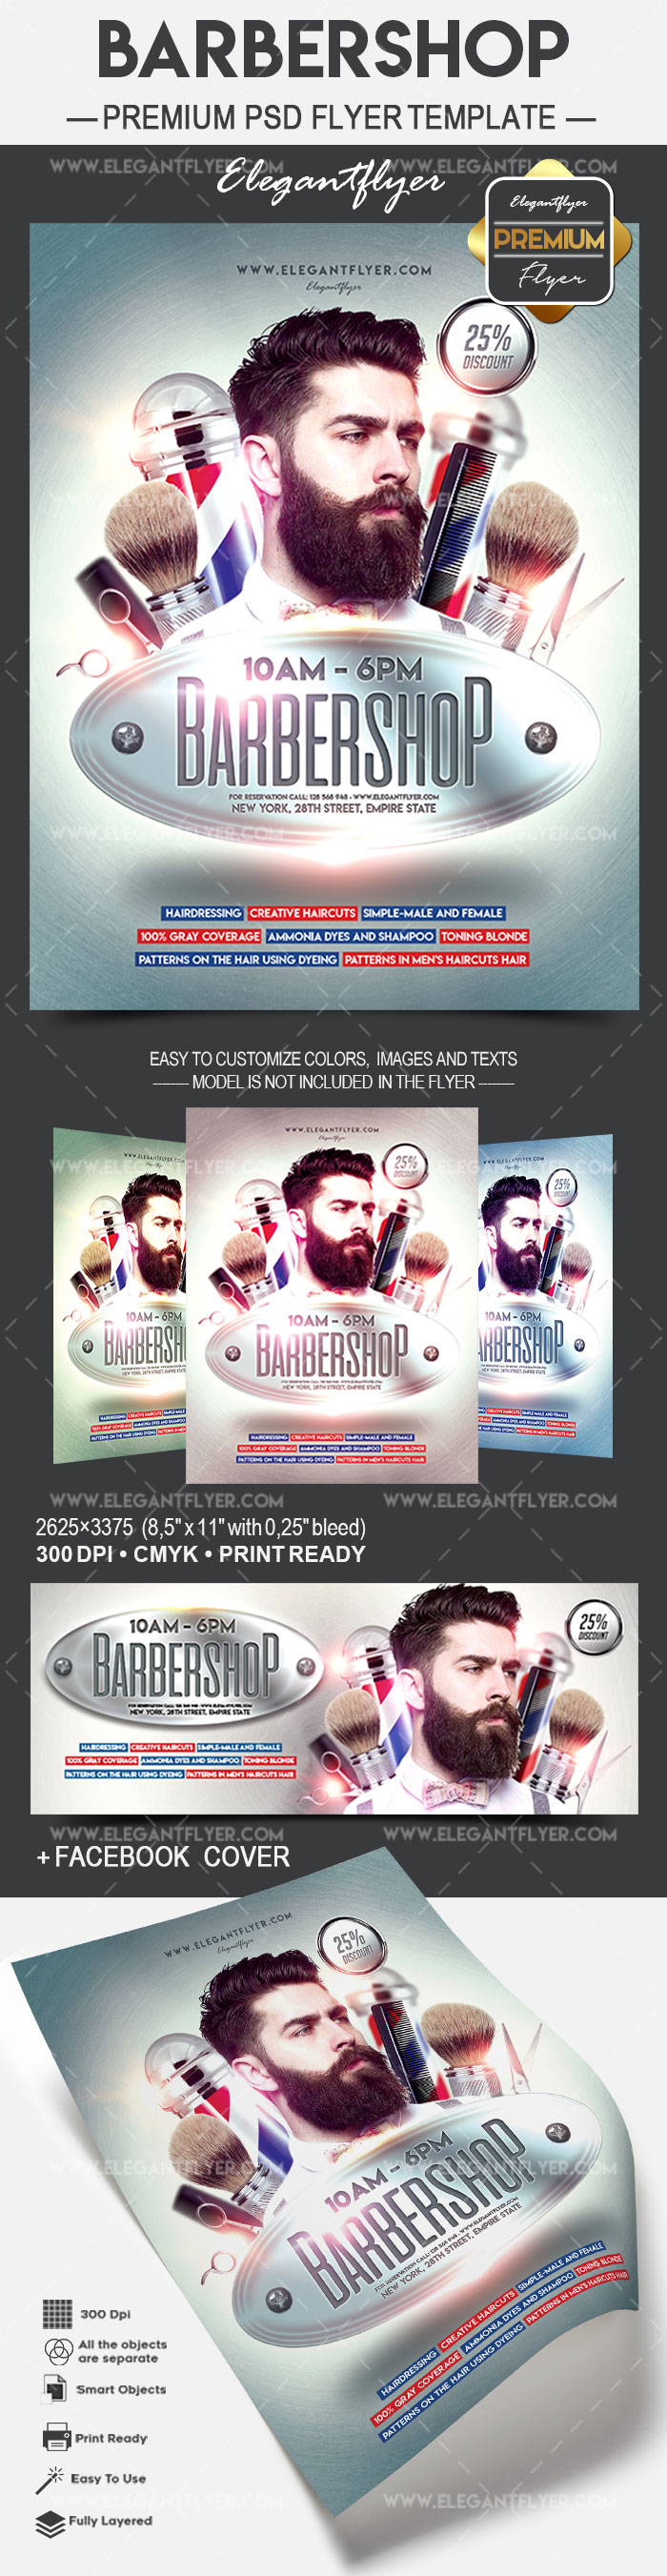 Elite Barbershop Flyer Template